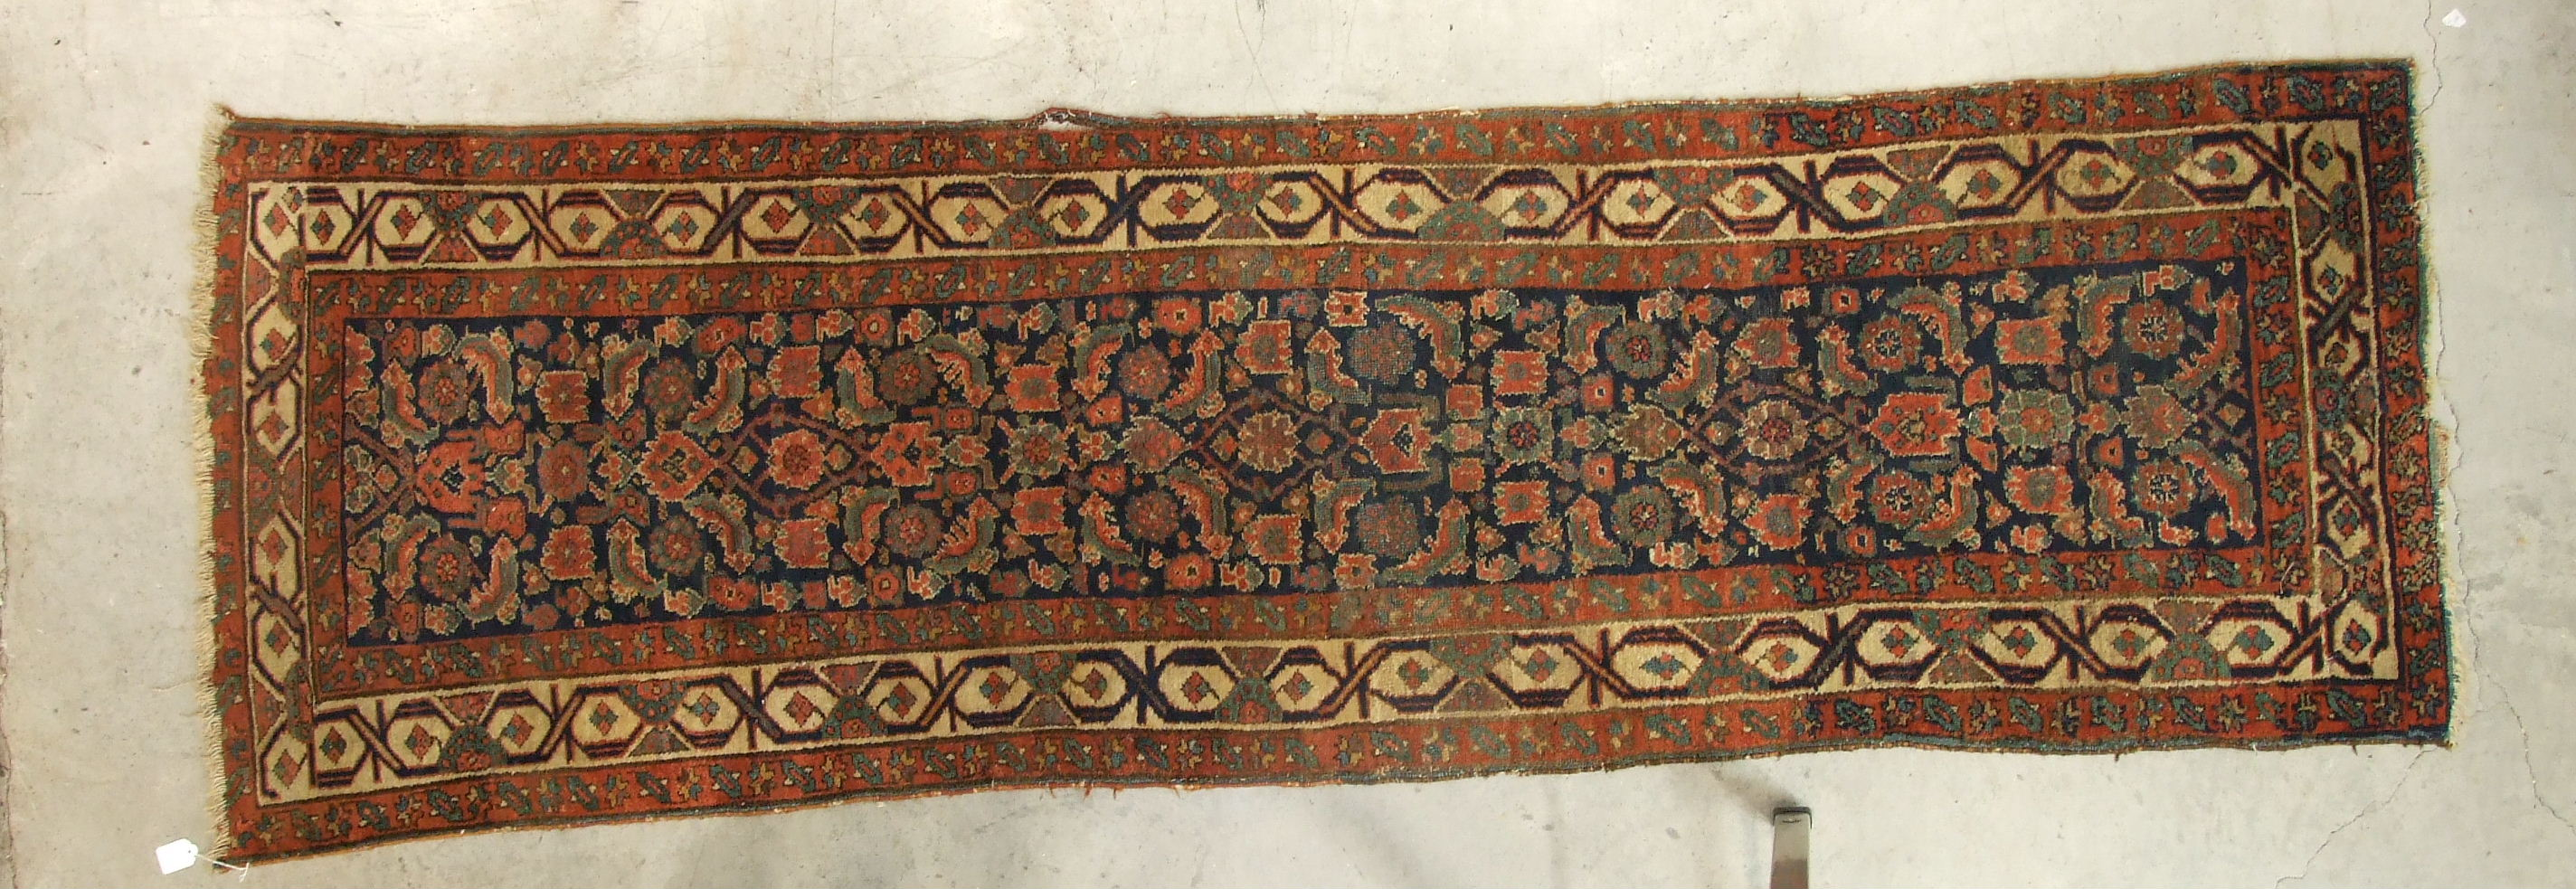 Lot 34 - A mid-20th century Oriental runner decorated with six central hooked lozenge medallions, with a